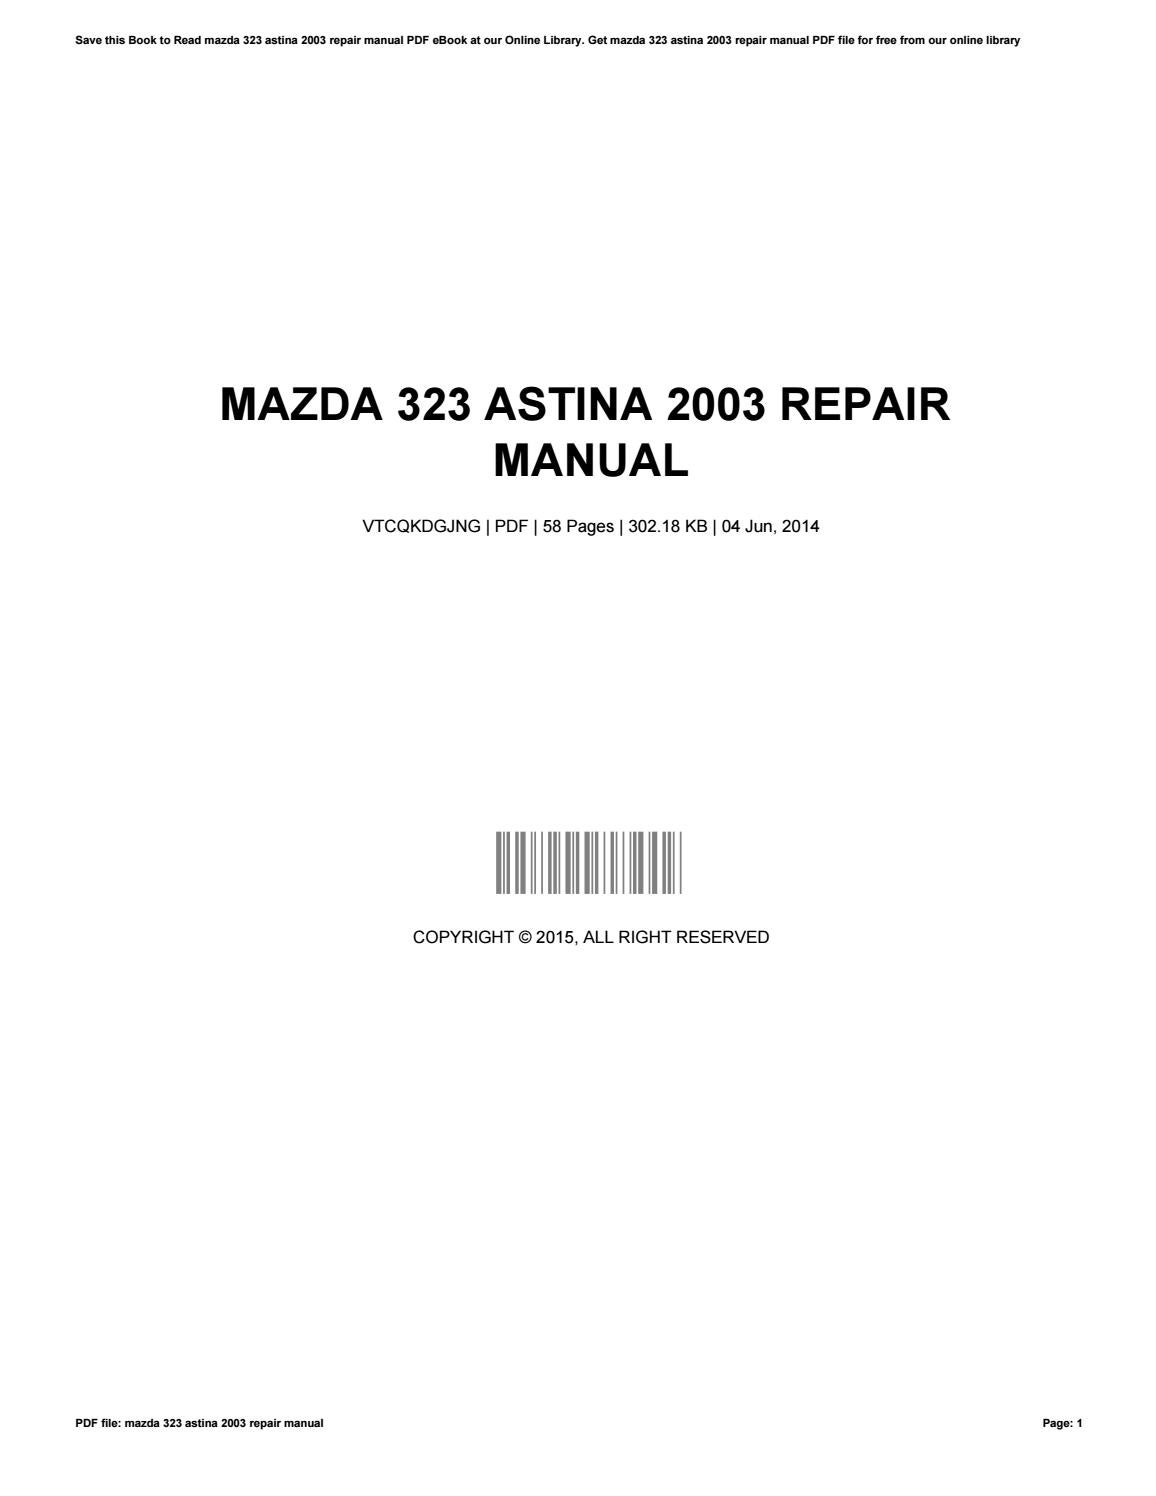 Mazda e2015 repair manual ebook array mazda 323 astina 2003 repair manual by kennethwheeler1939 issuu rh issuu fandeluxe Images